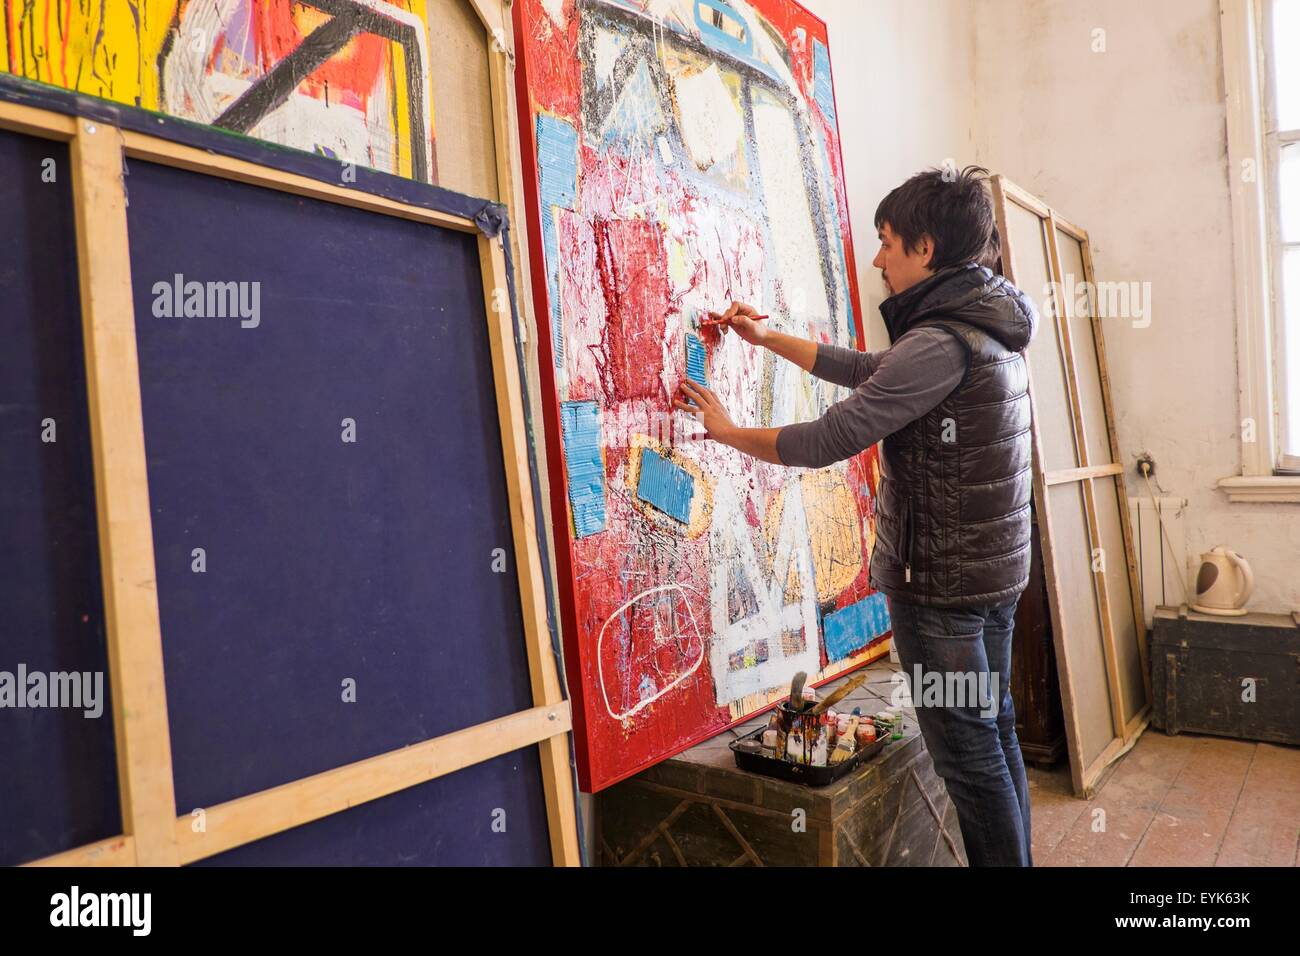 Artist drawing on abstract painting in studio - Stock Image